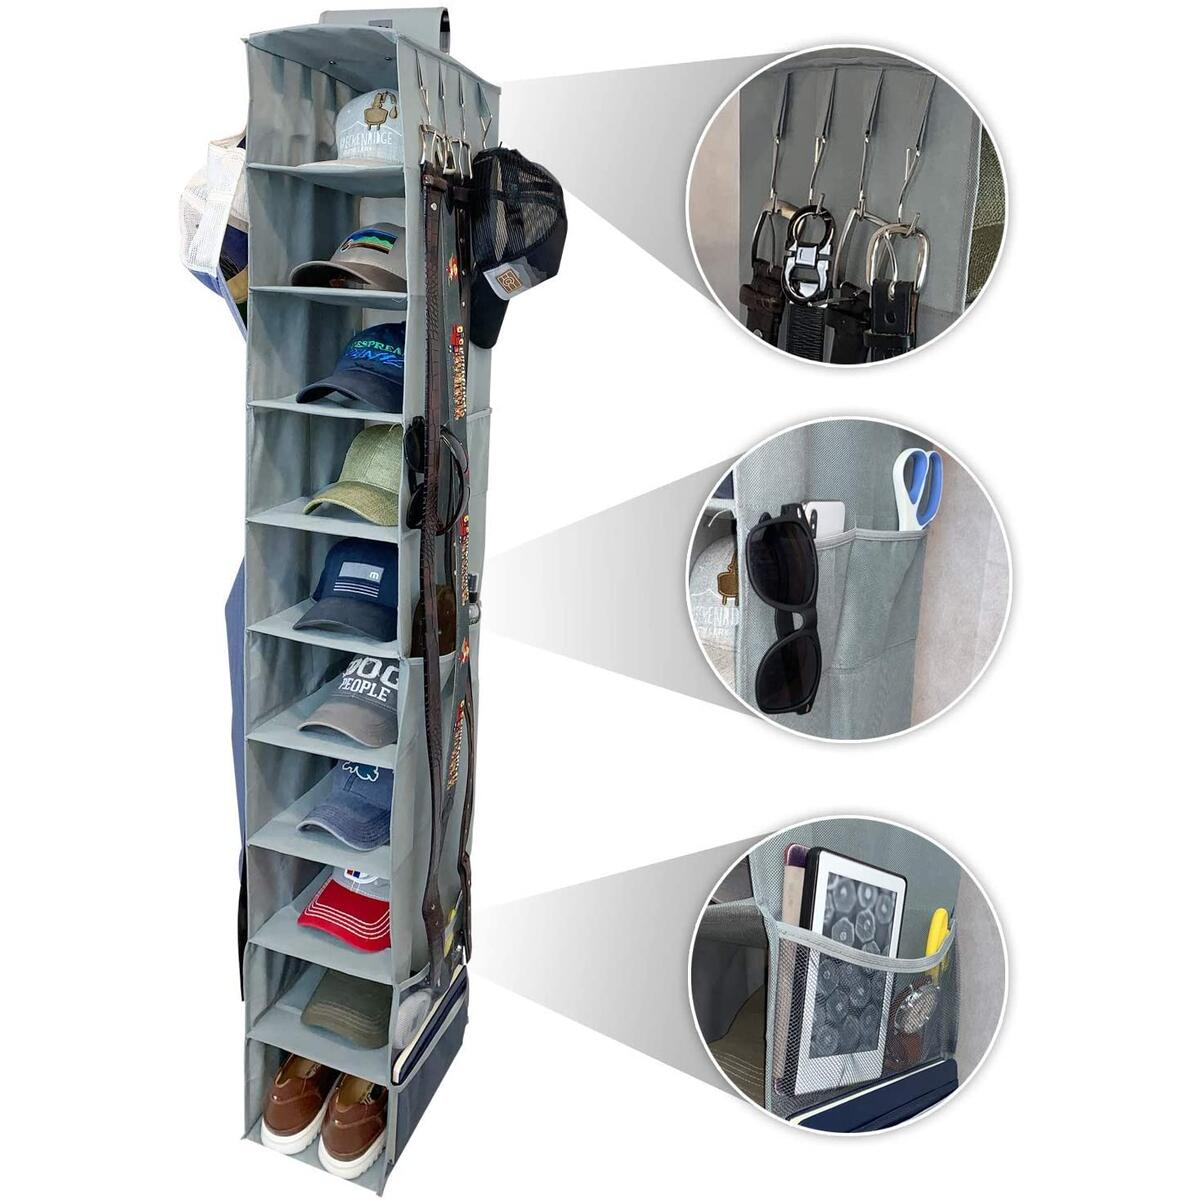 THE ULTIMATE HAT RACK 10 Shelf Hanging Closet Hat Organizer for Hat & Shoe Storage - Keep Your Caps and Baseball Hats in Great Condition - Hat Holder & Baseball Cap Organizer w/Tie & Belt Side Hooks (GRAY VERSION)